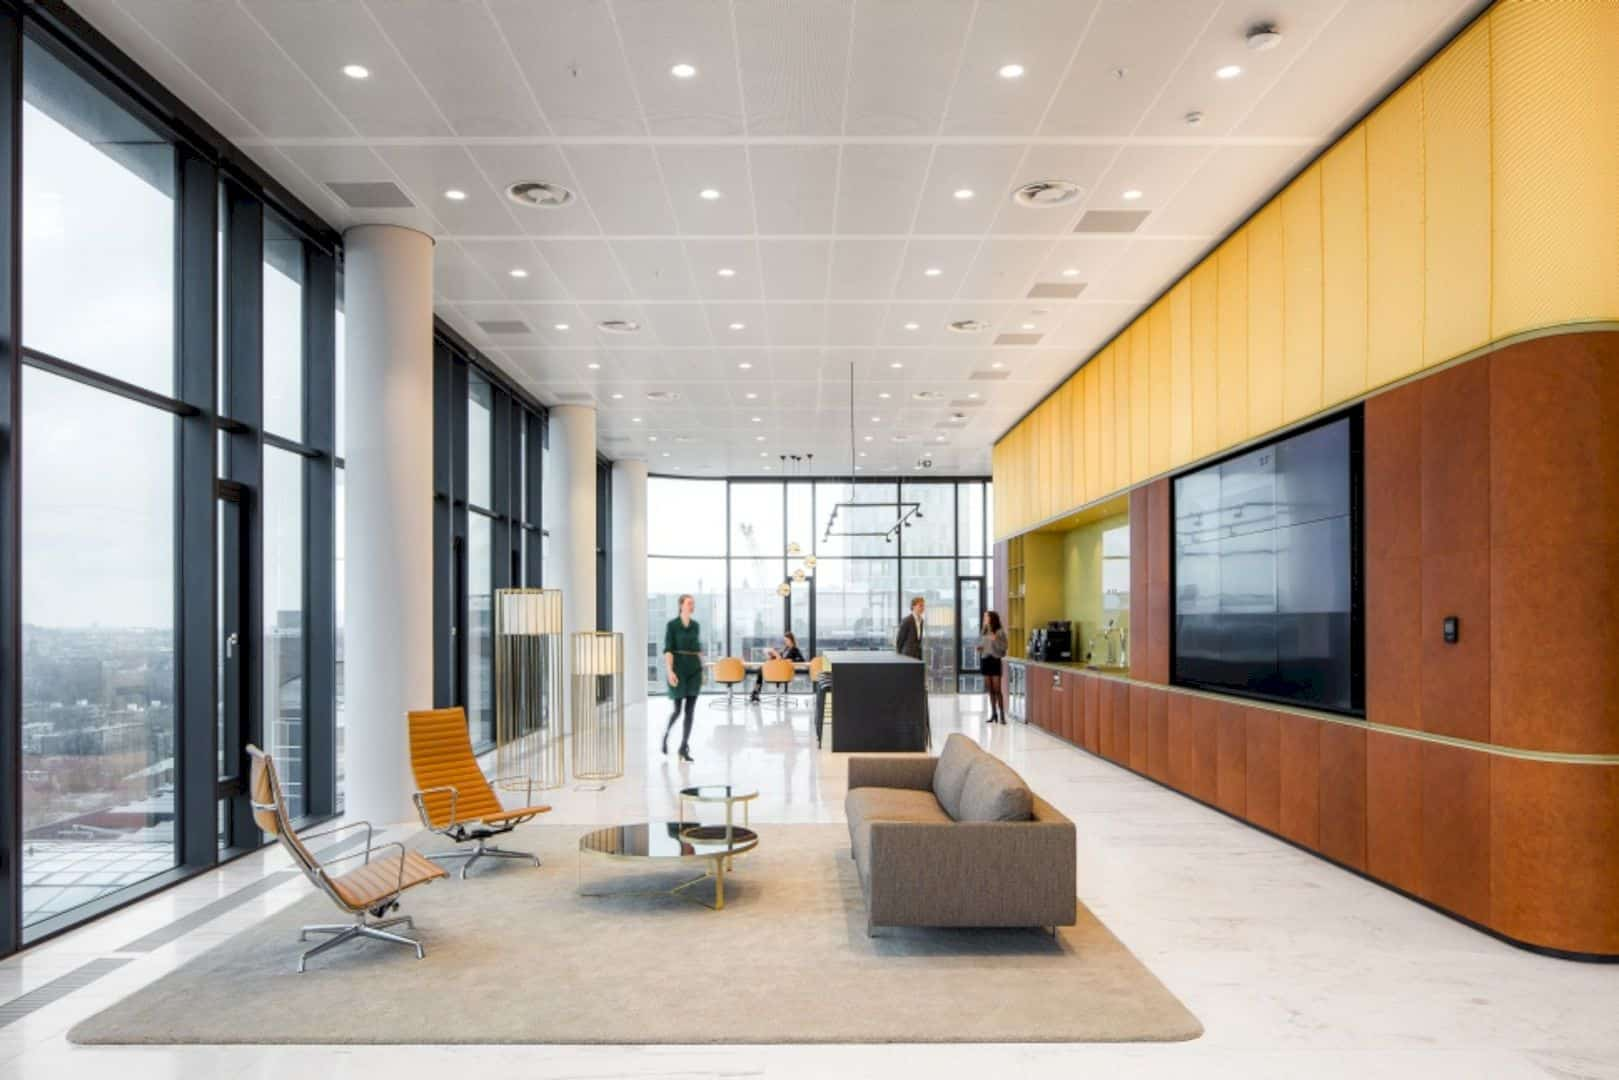 Cms Amsterdam A Warm Natural Base Office Design Merged With Curves And Transparency 1